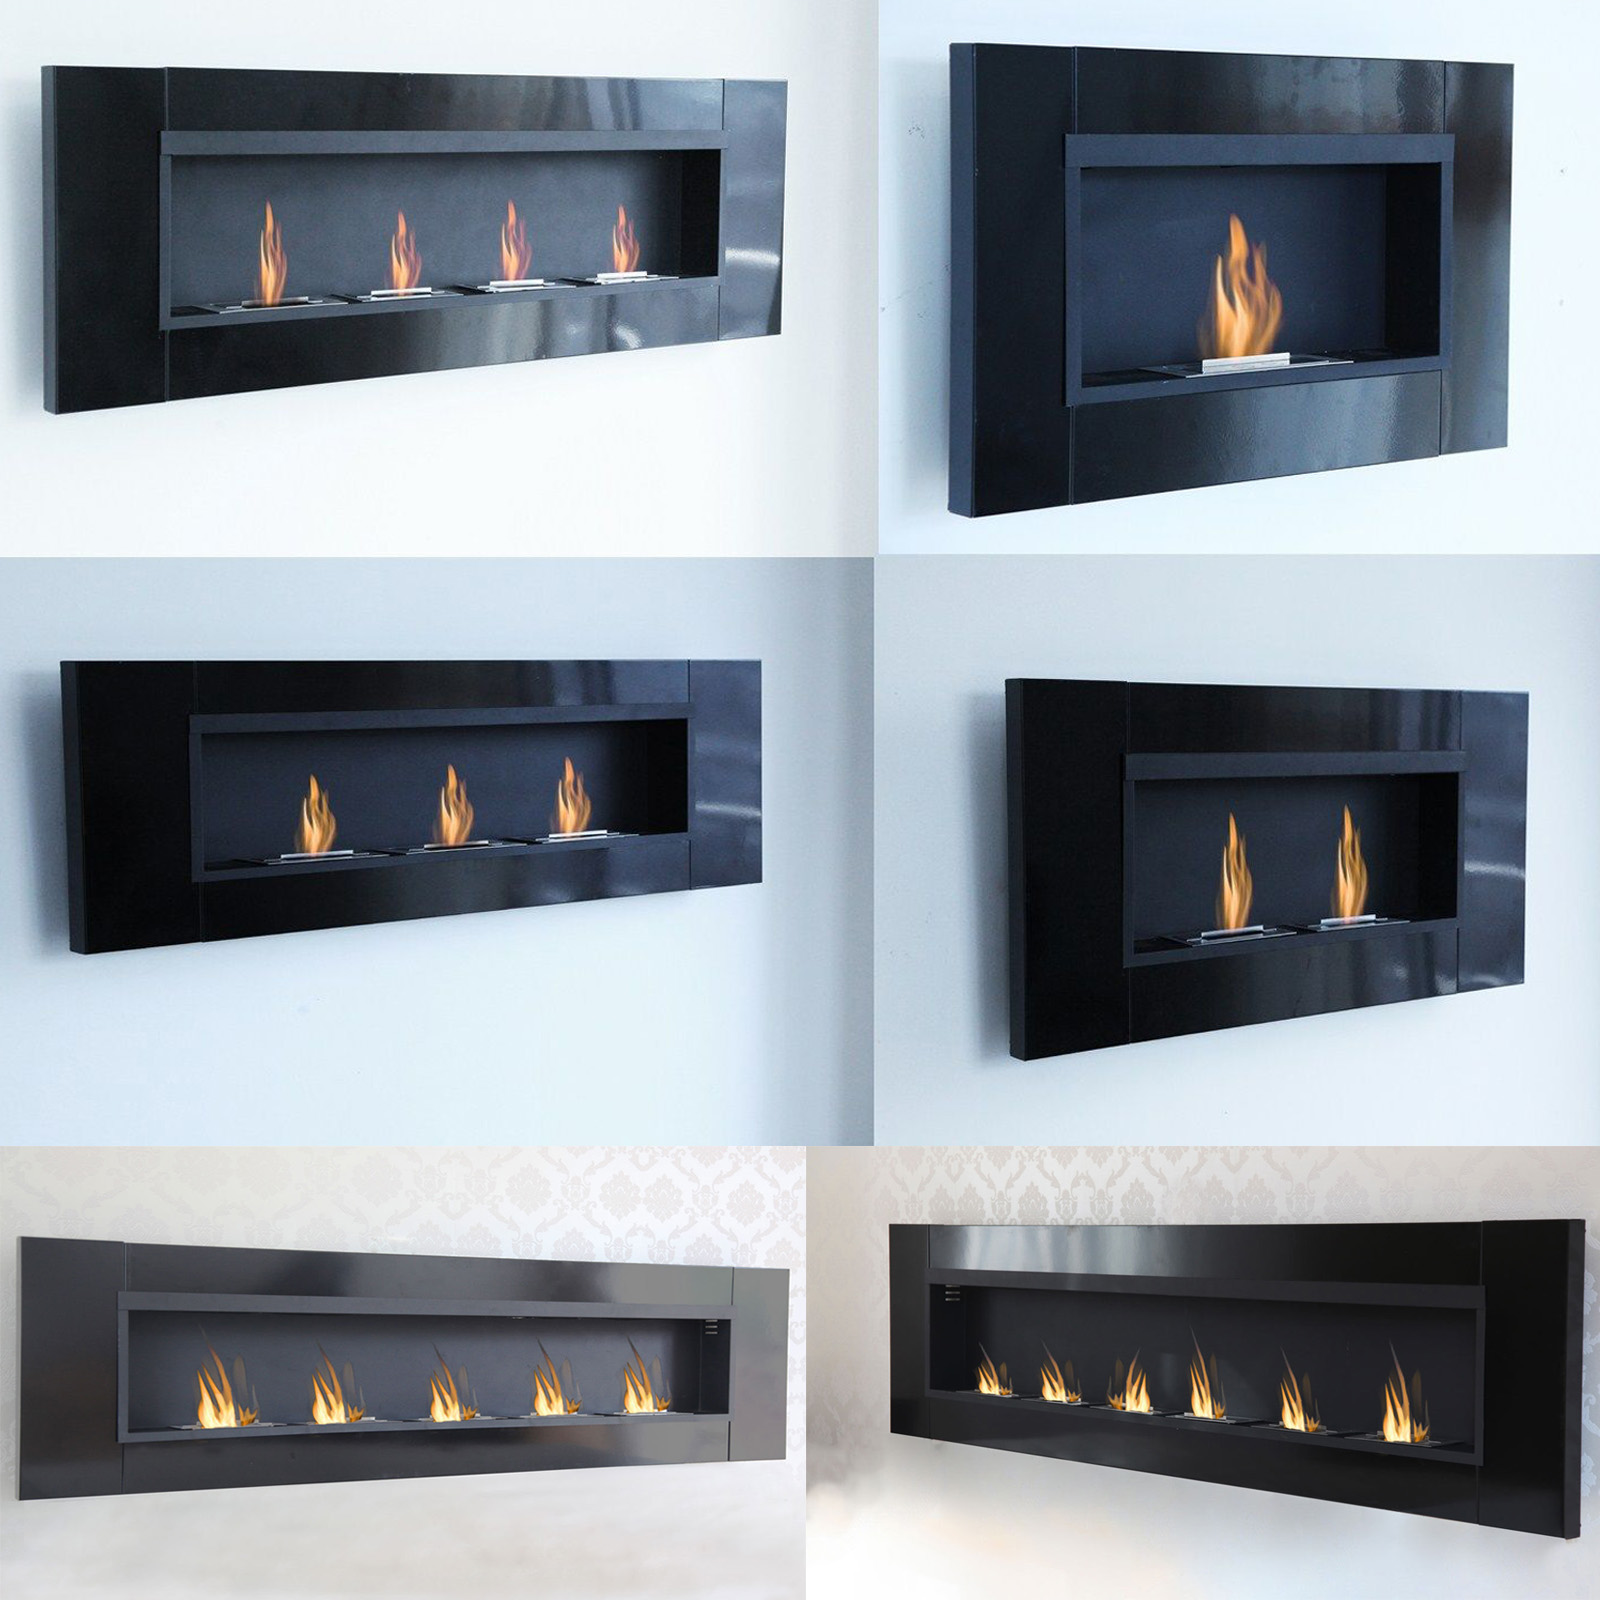 bio ethanol wandkamin chemin e gel kamin gelkamin fireplace tischkamin ebay. Black Bedroom Furniture Sets. Home Design Ideas